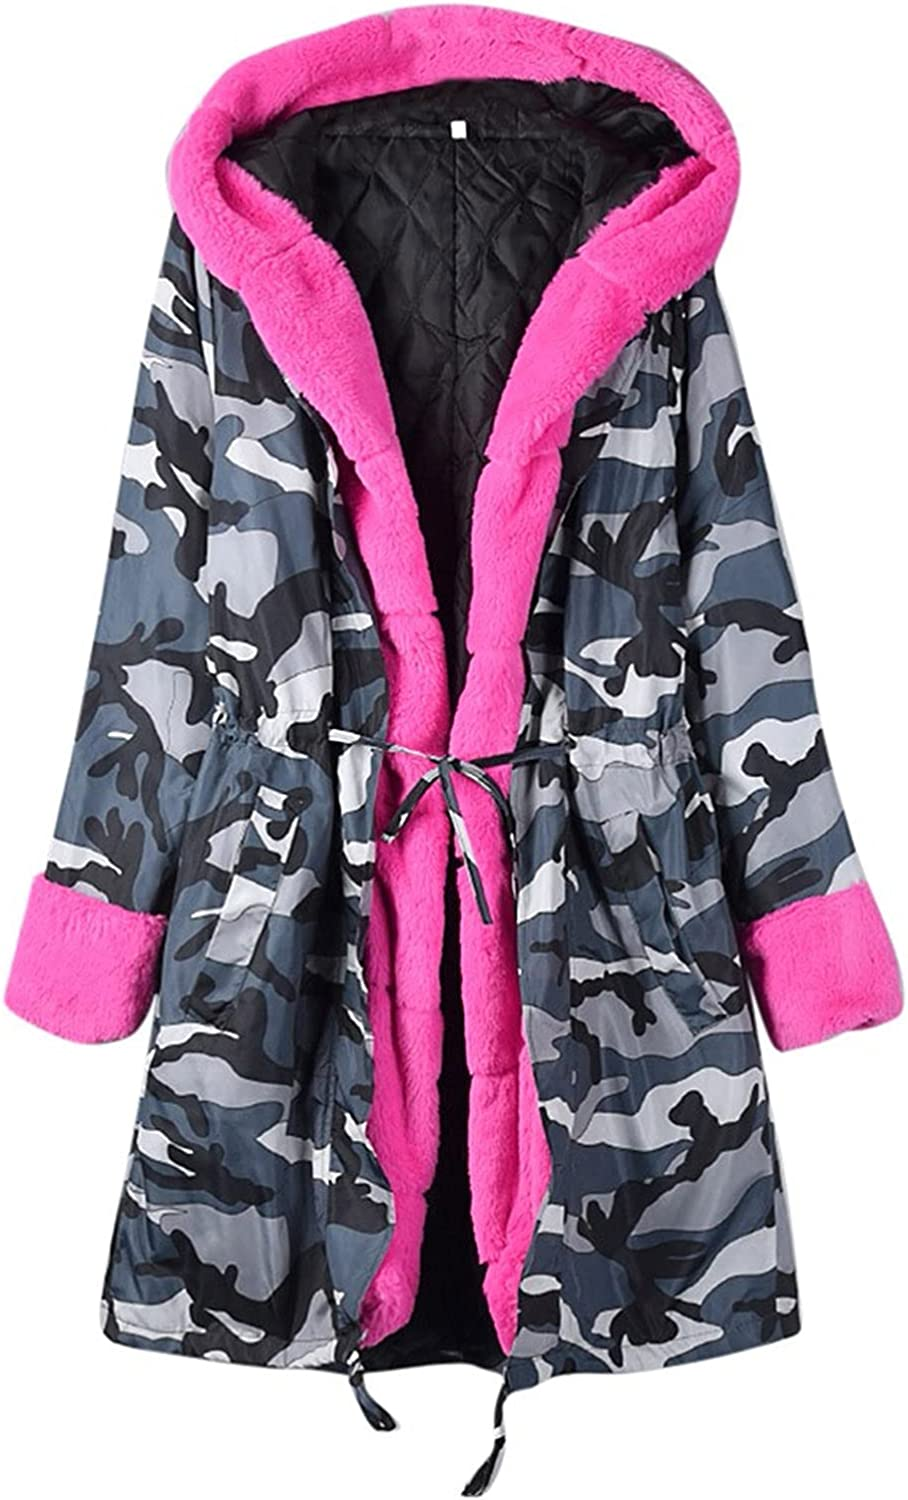 Women's Winter Fleece Lined Down Coat Hooded Thickened Jacket With Pockets Faux Fur Warm Jacket Mid-Long Overcoat